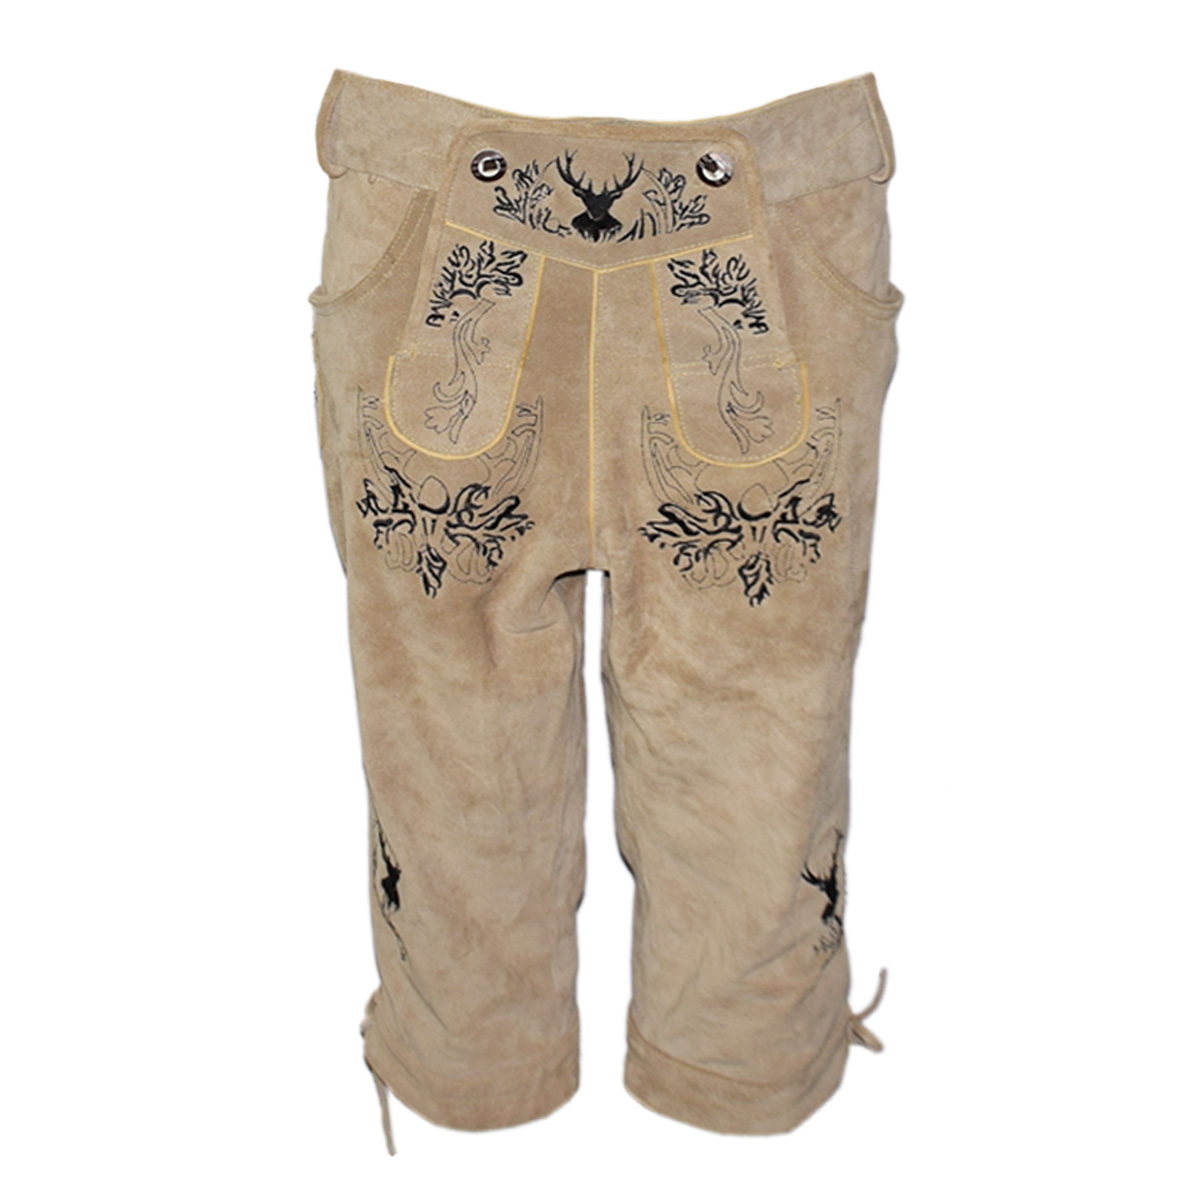 LIGHT BROWN MEN LONG LEDERHOSEN WITH BLACK ART WORK